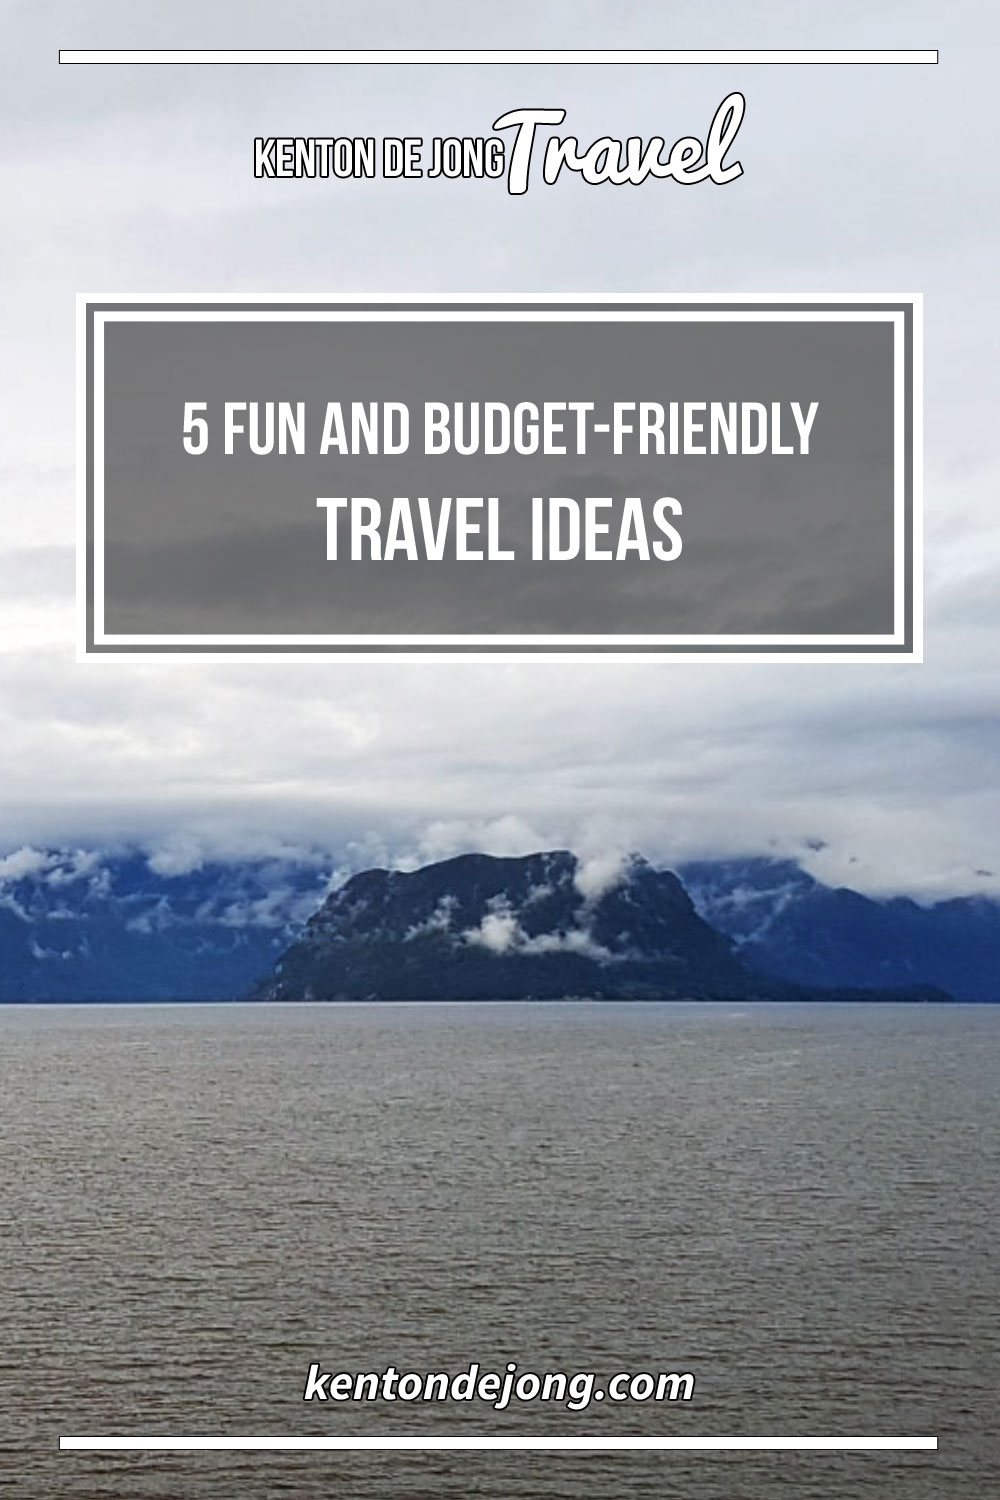 5 Fun and Budget-Friendly Travel Ideas